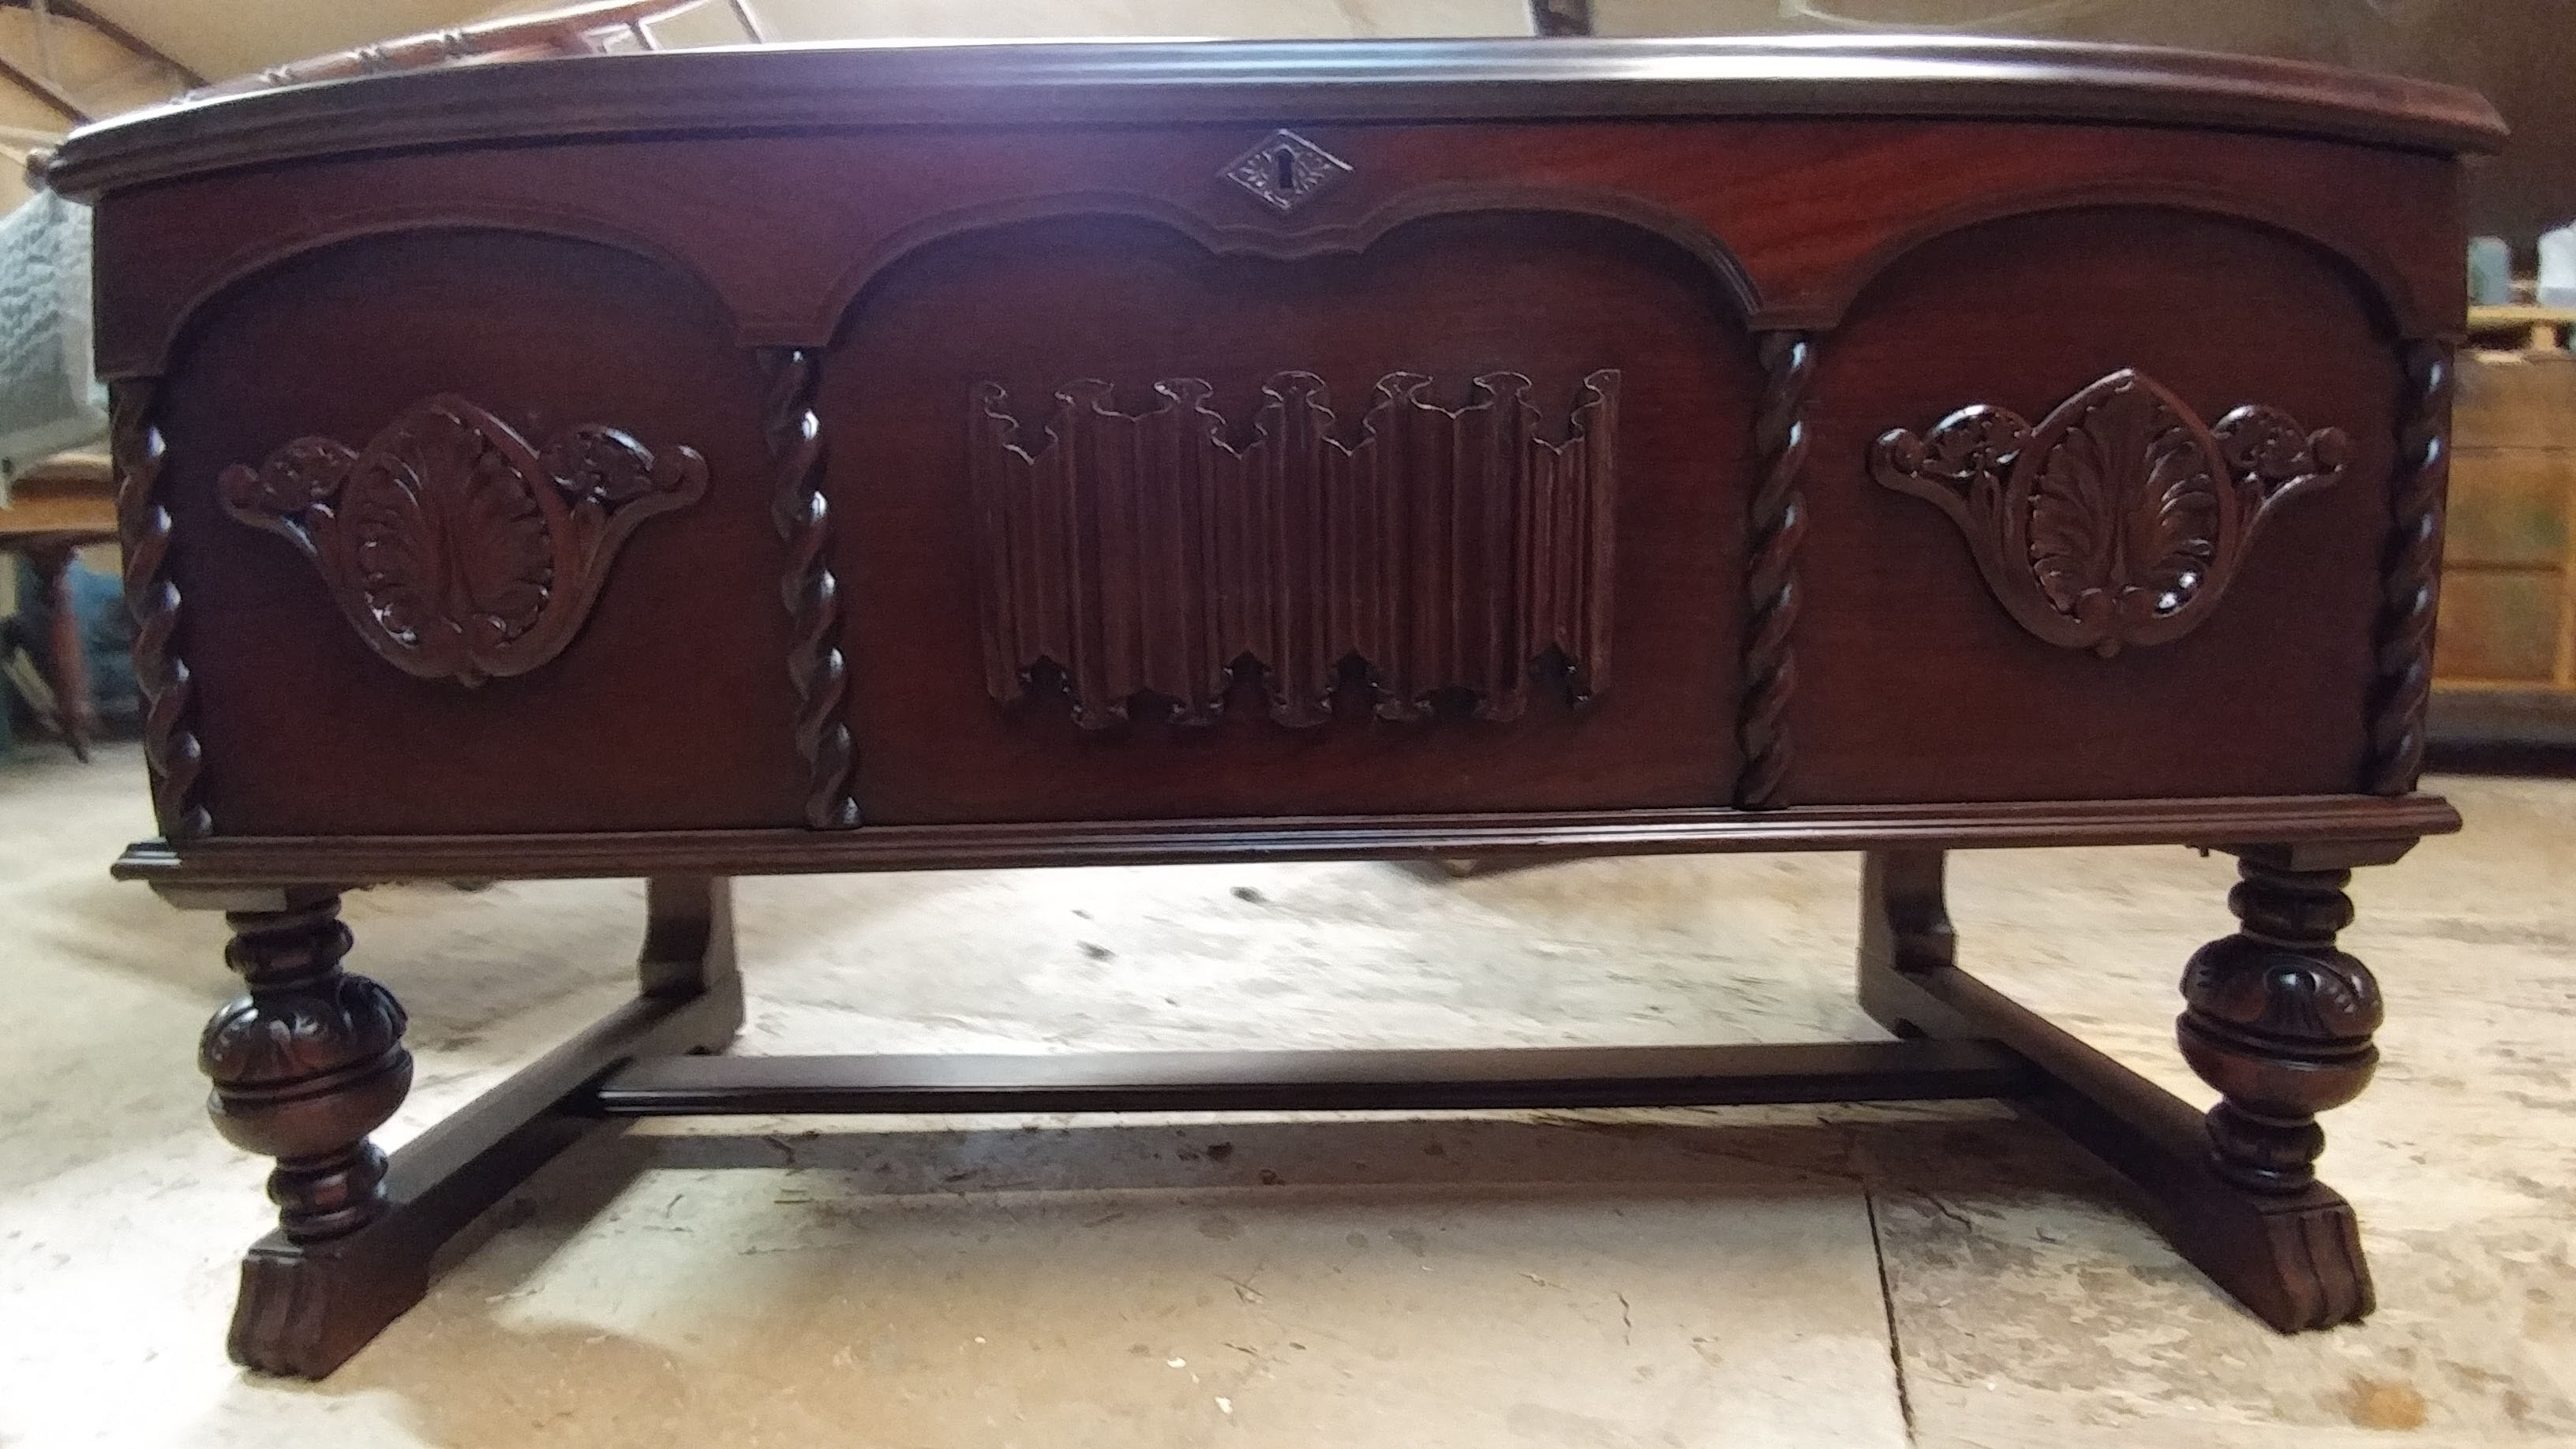 Merveilleux Restored Coffee Table   Furniture Restoration In Medford, OR